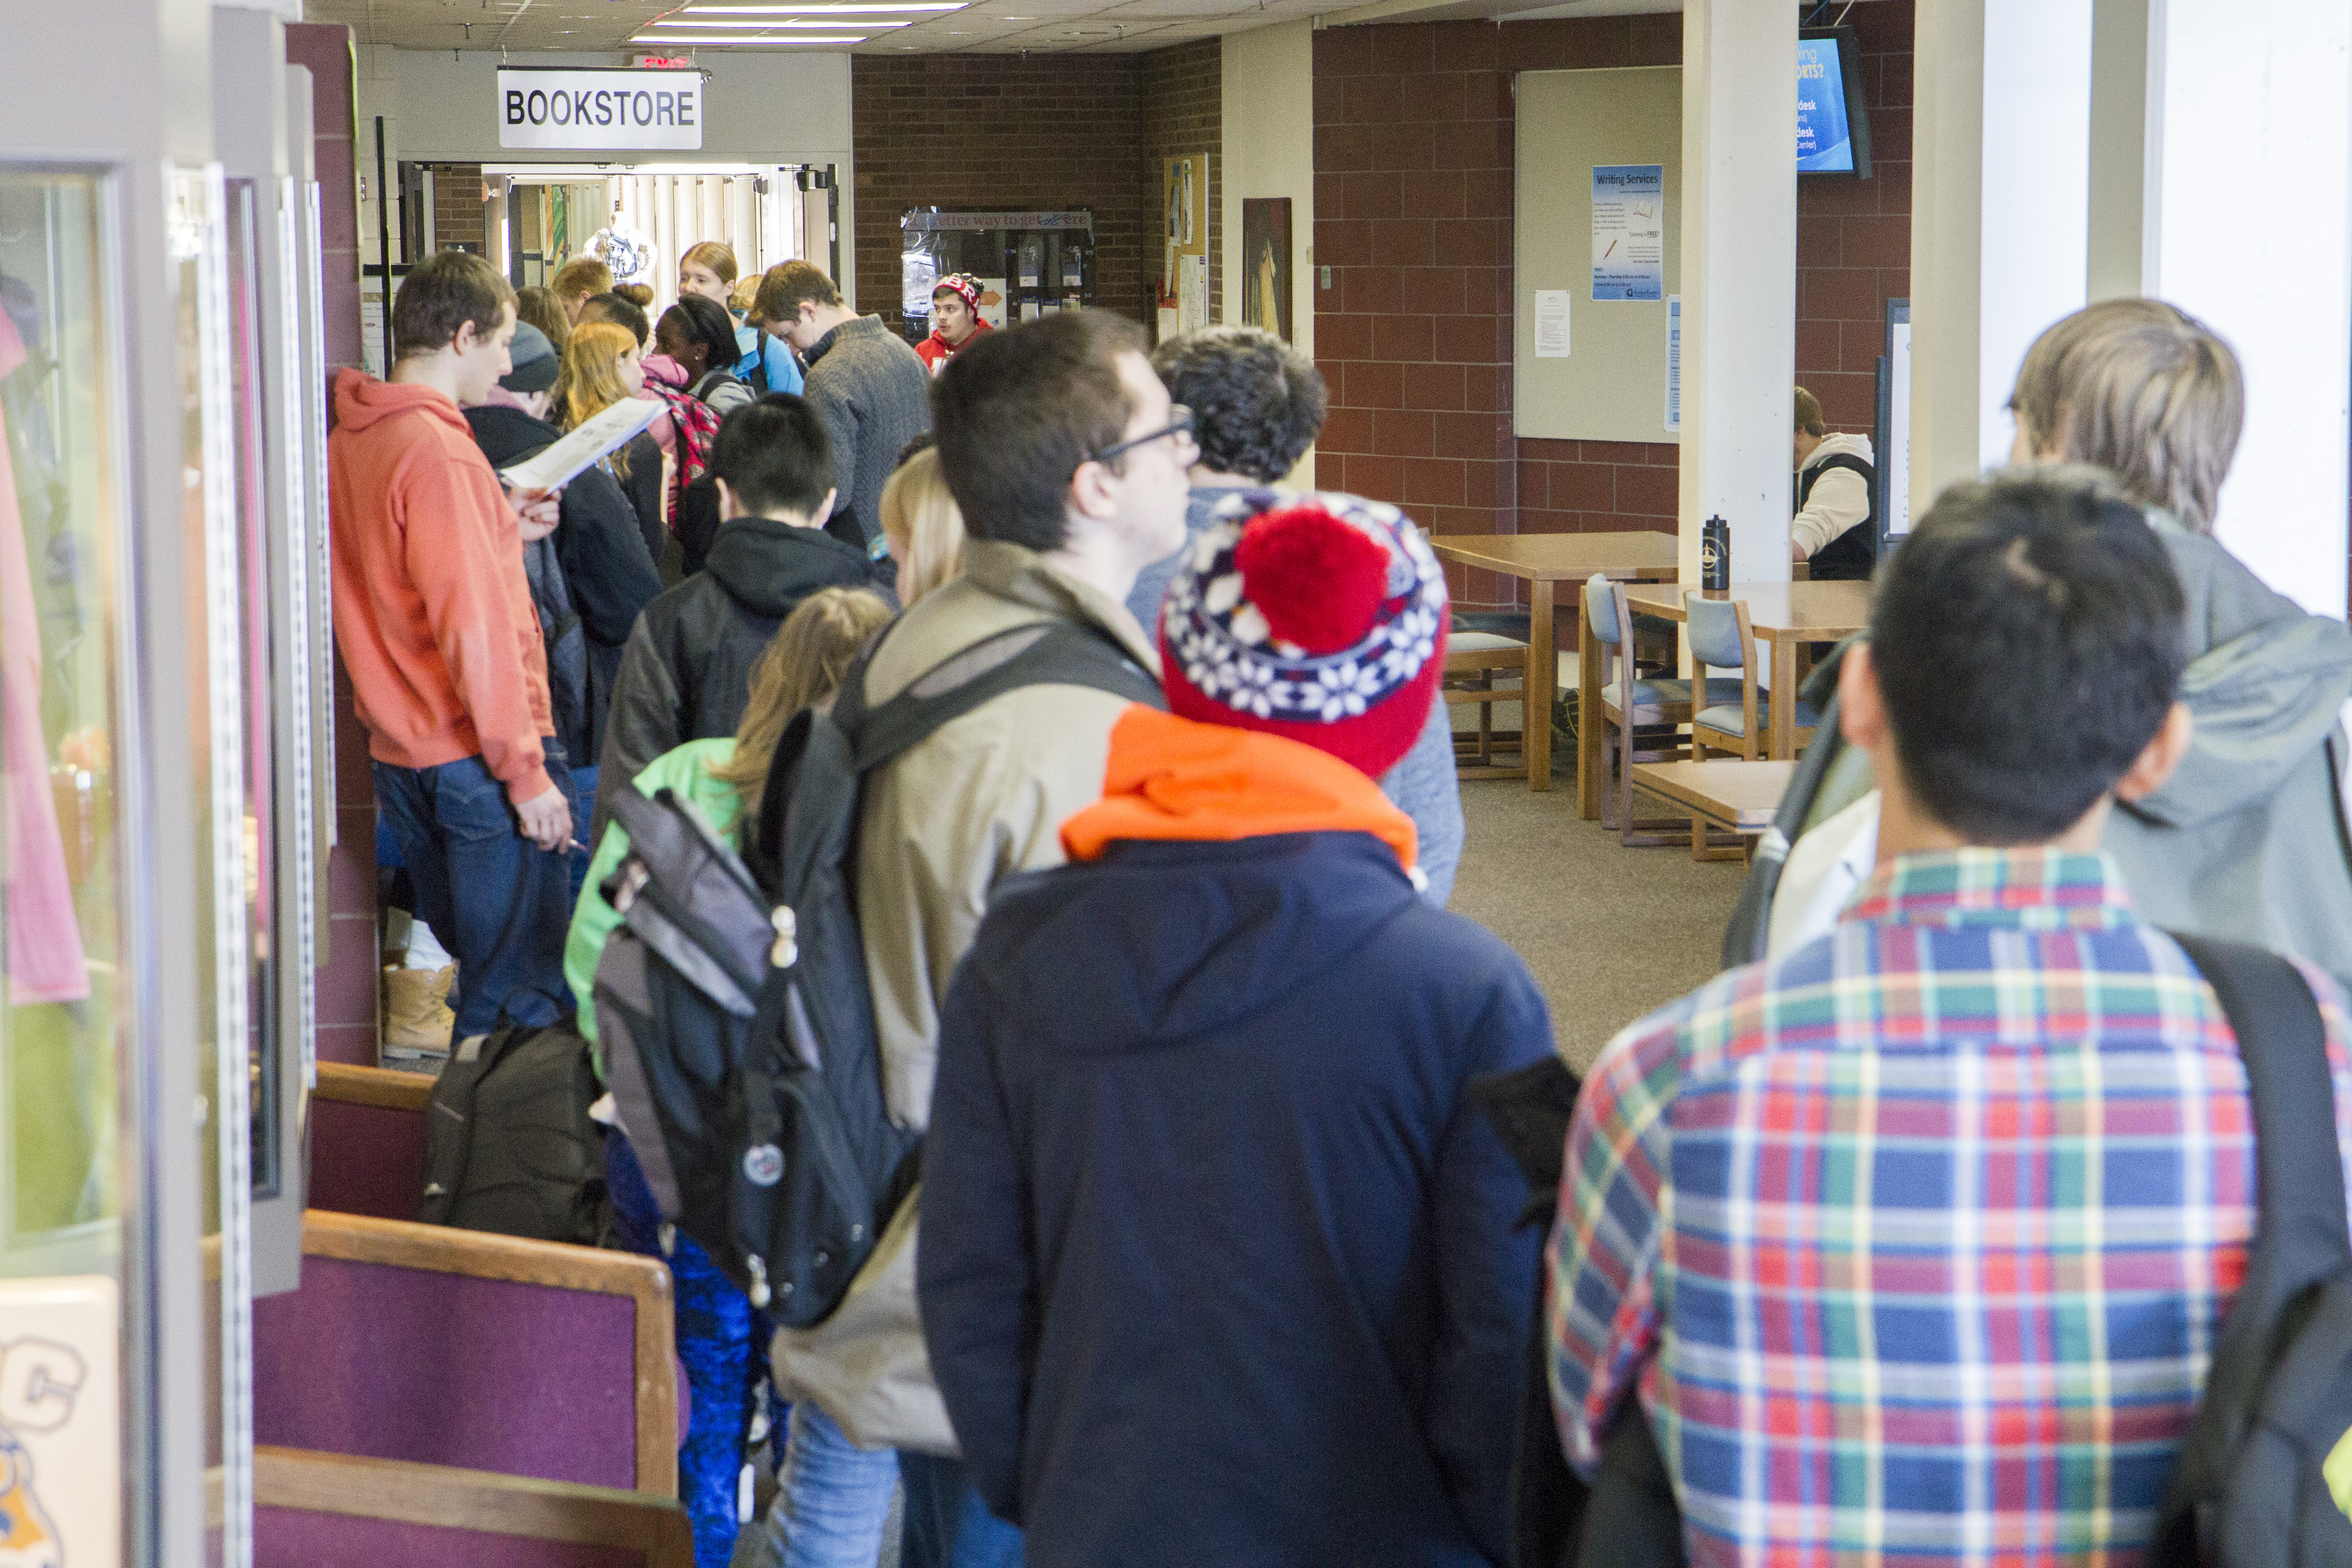 Students wait in line for books at the Campus Store in January 2016. Bookstore frustrations continue for students today.